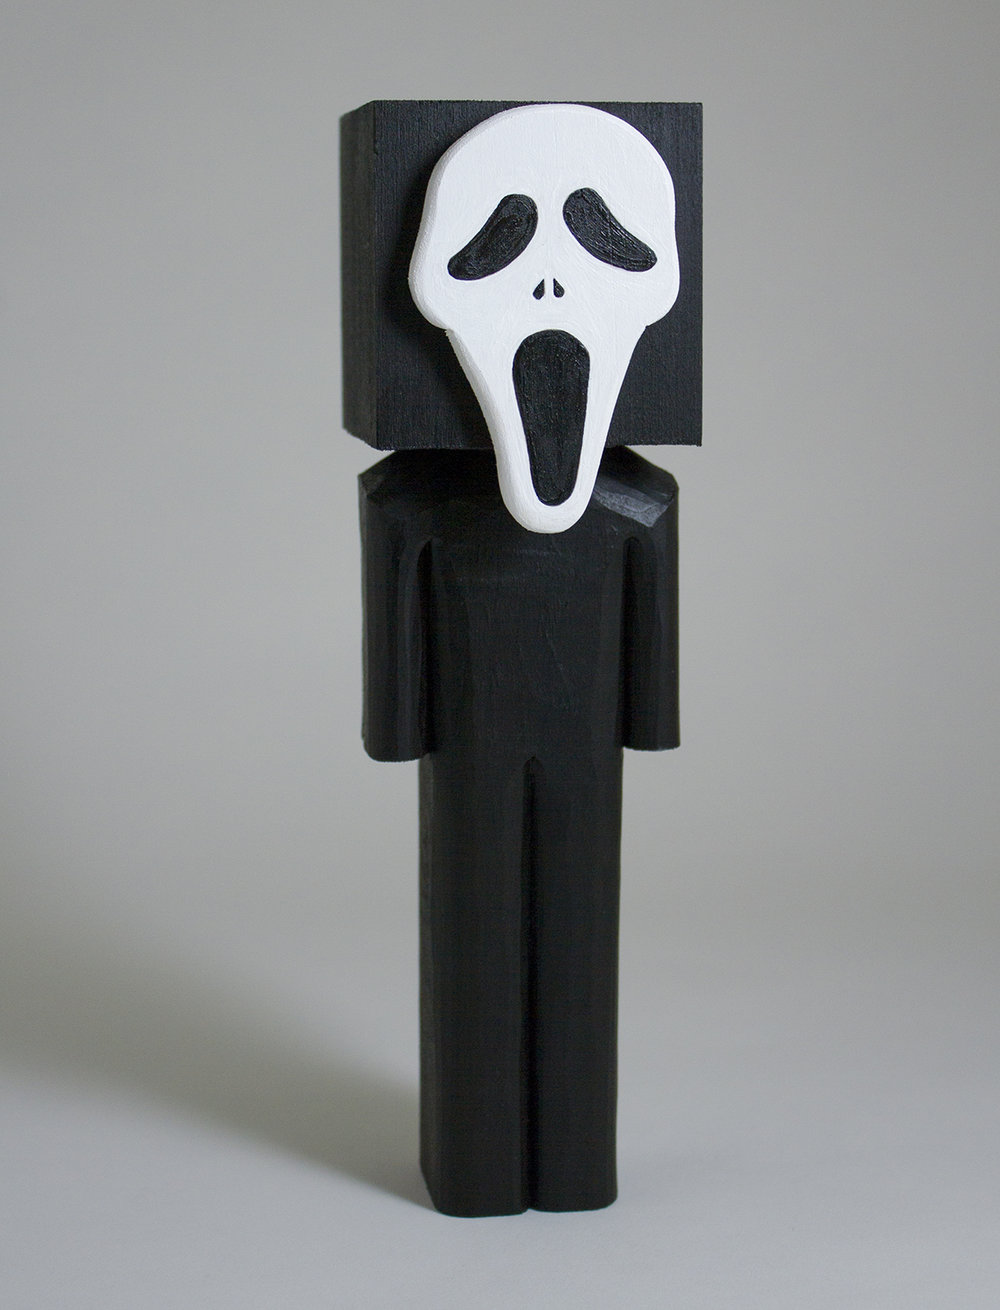 """Scream"" Basswood and acrylic. 7.75 x 2.25 x 2.5 inches. CSK 011G"